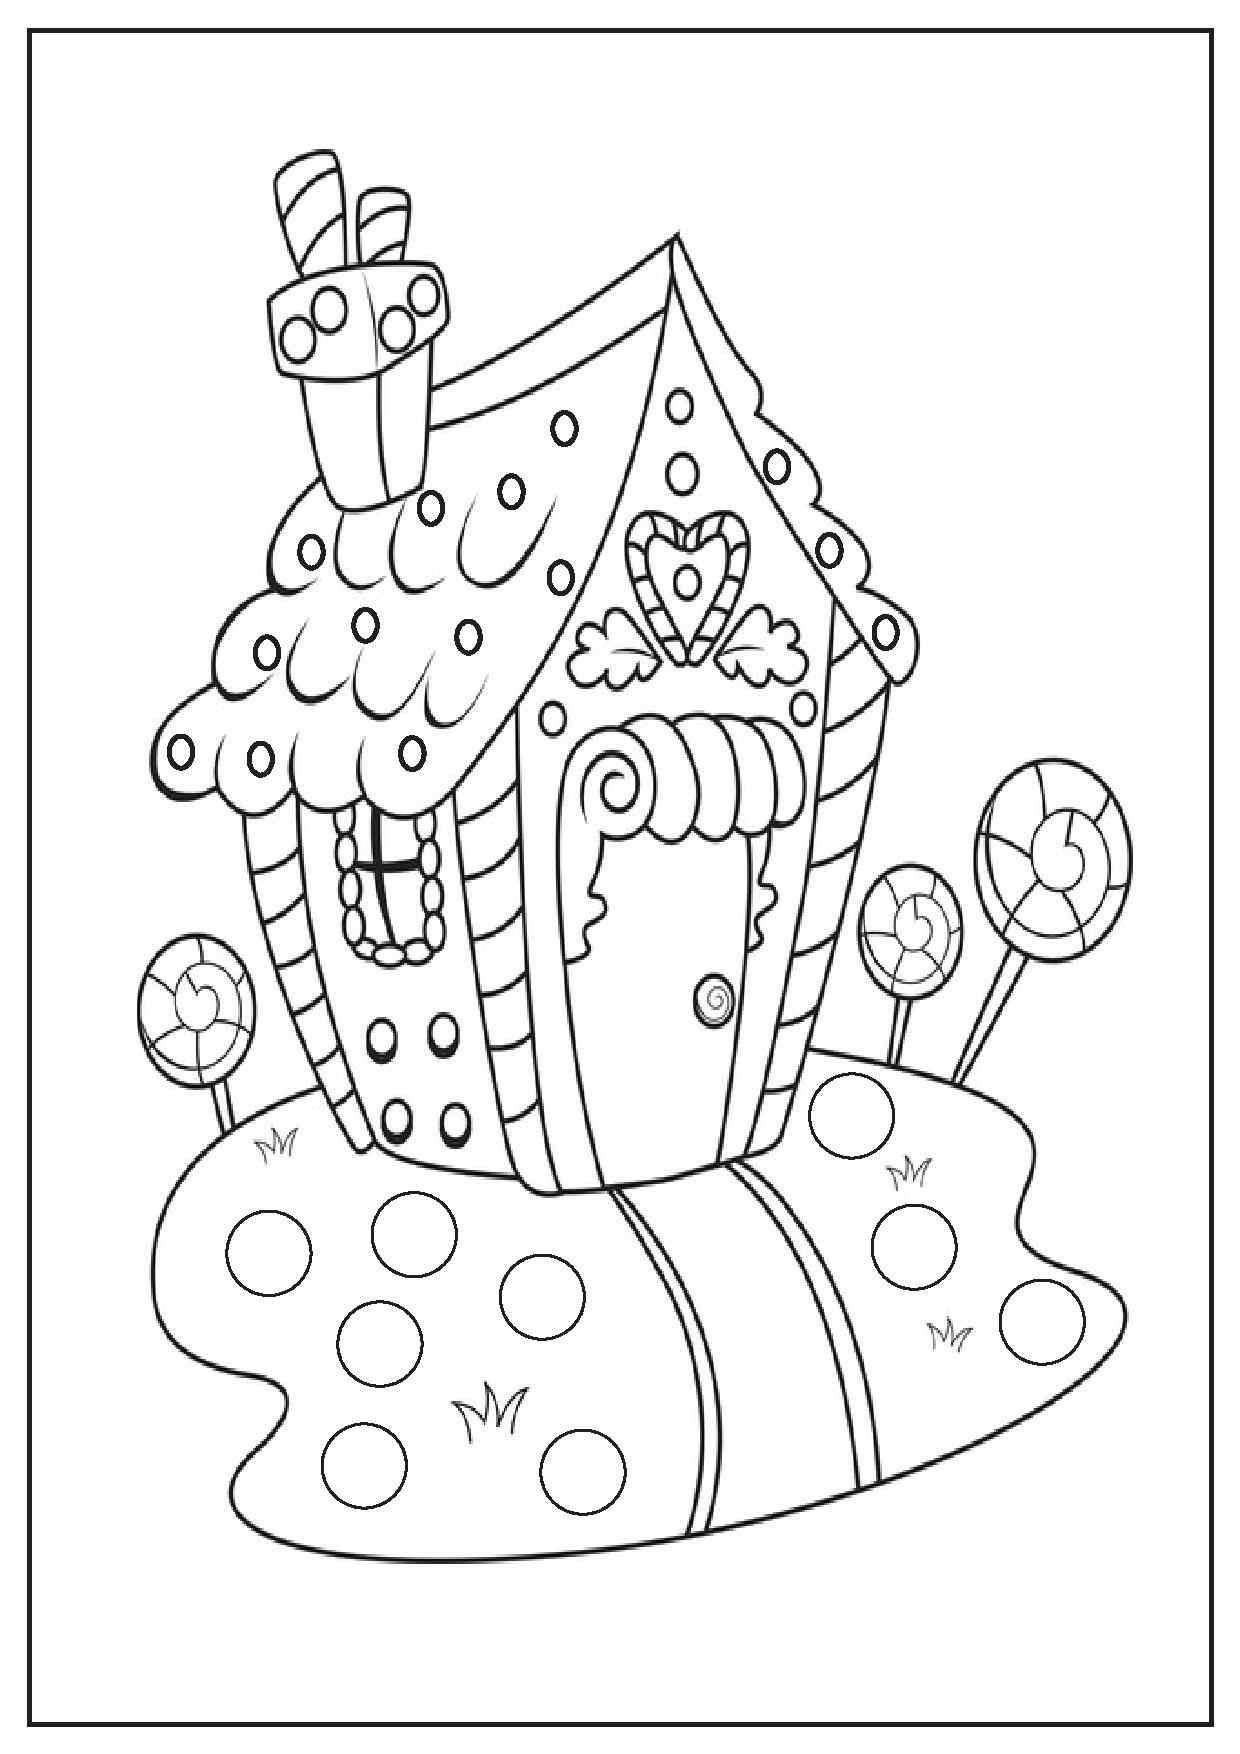 Printables Coloring Worksheets Printable 1000 images about coloring pages on pinterest reindeer free printable and cute pages